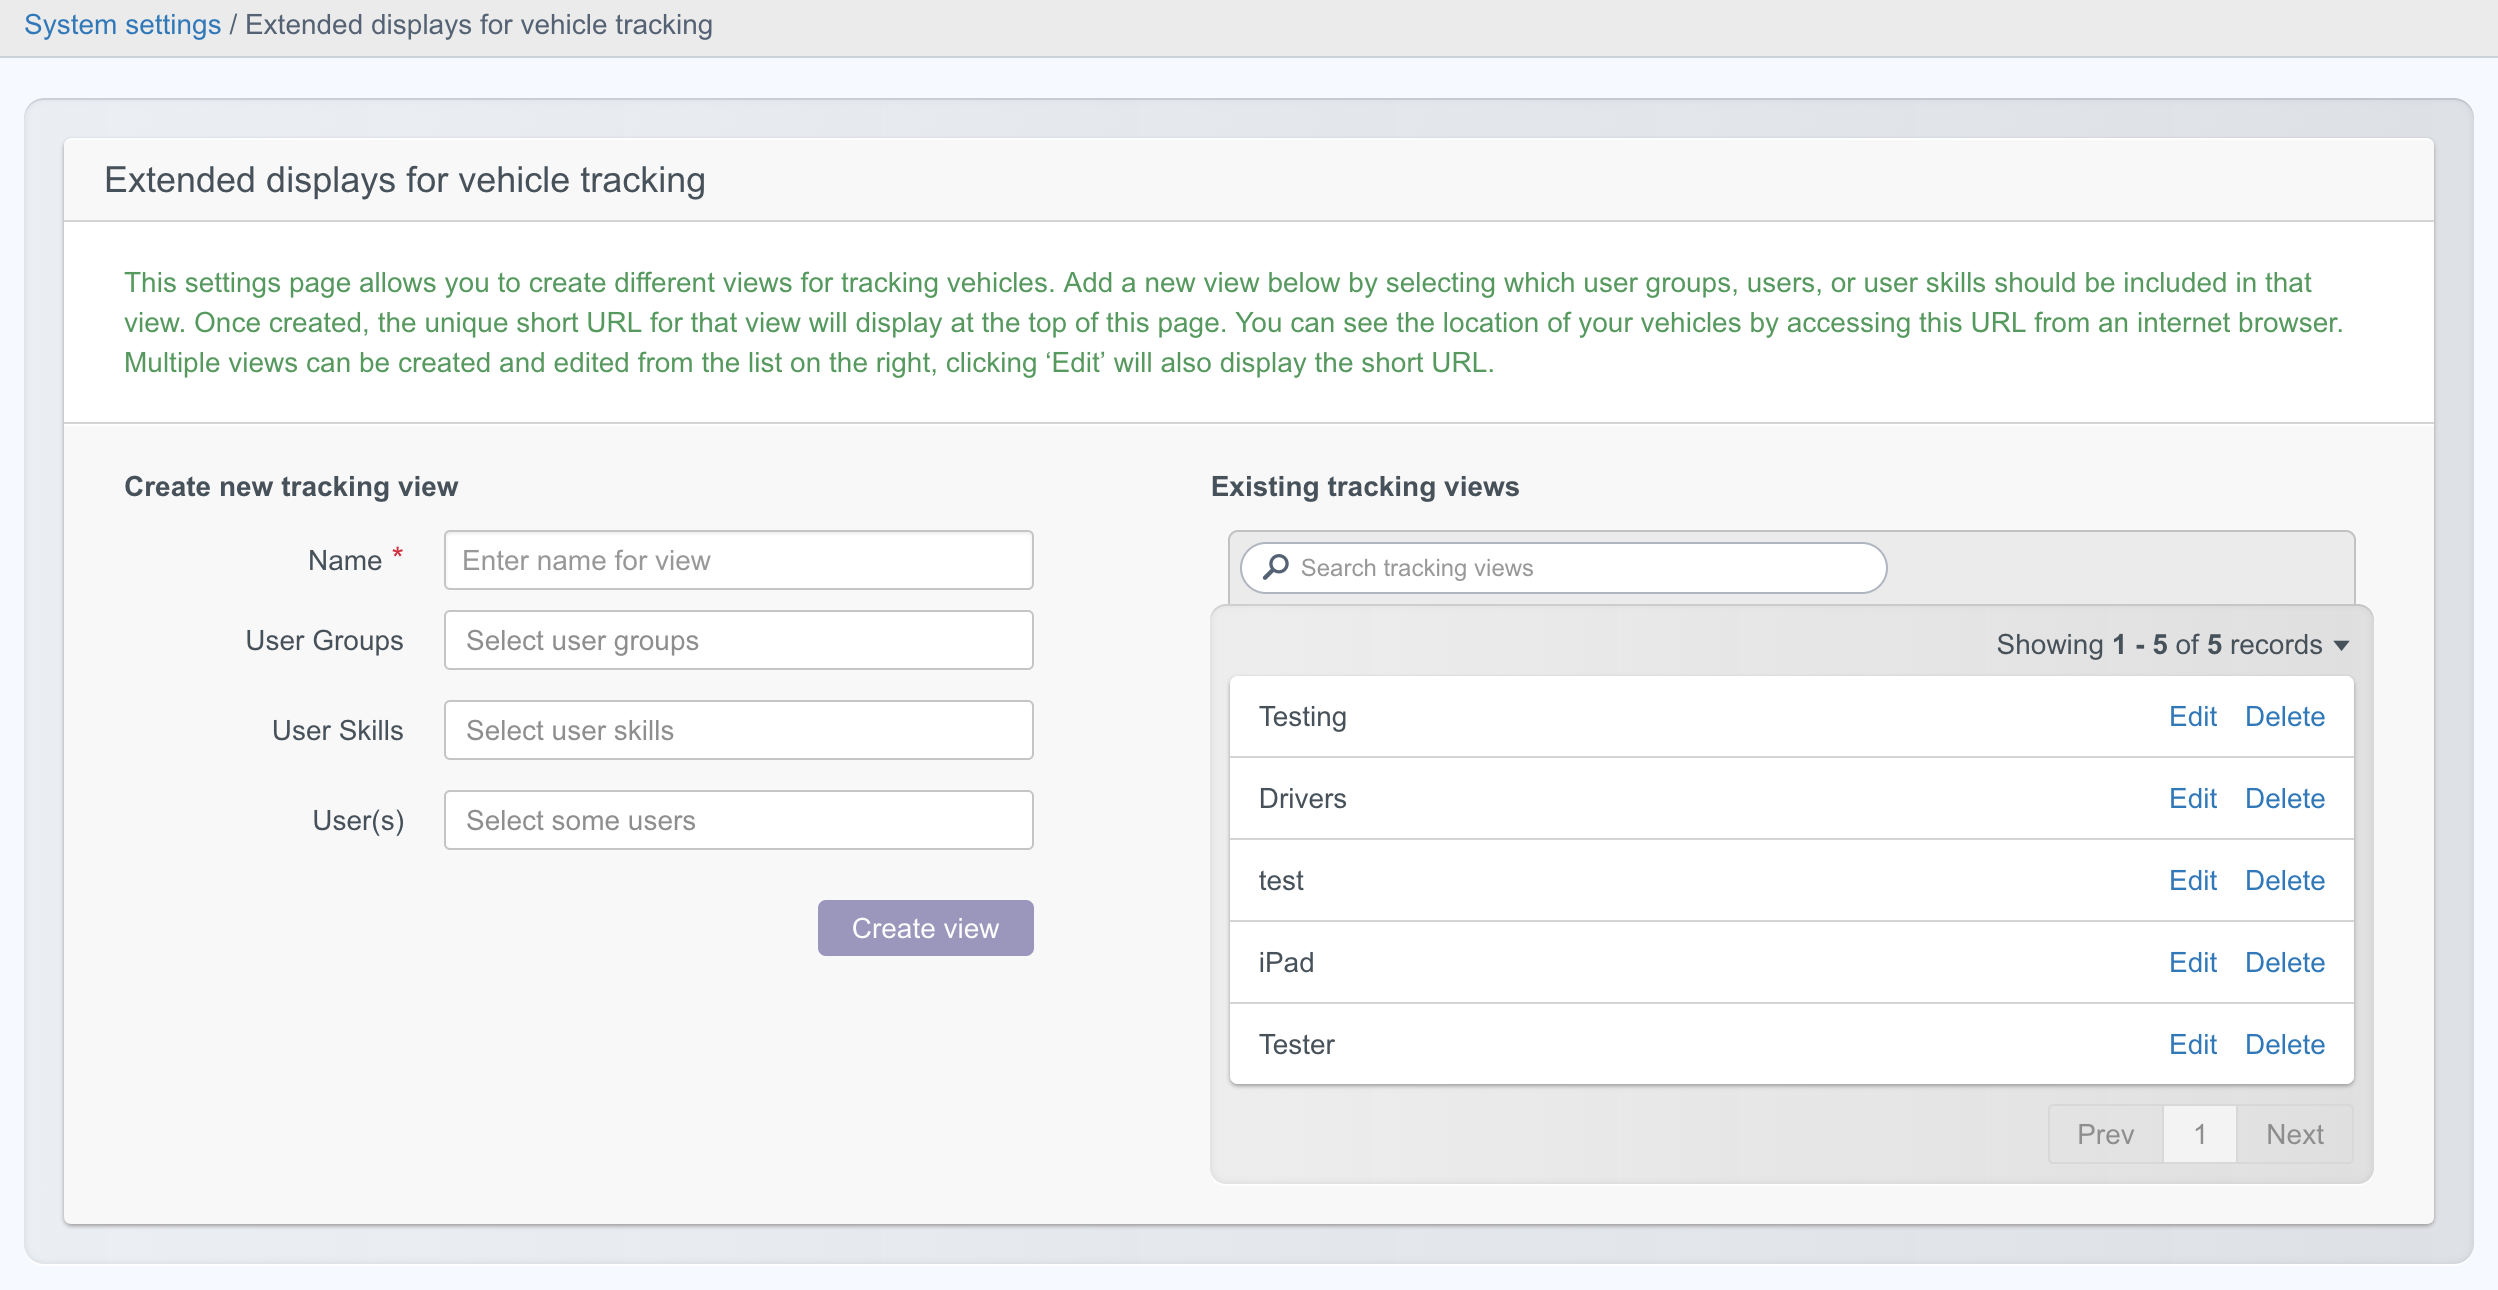 Tracking view settings page